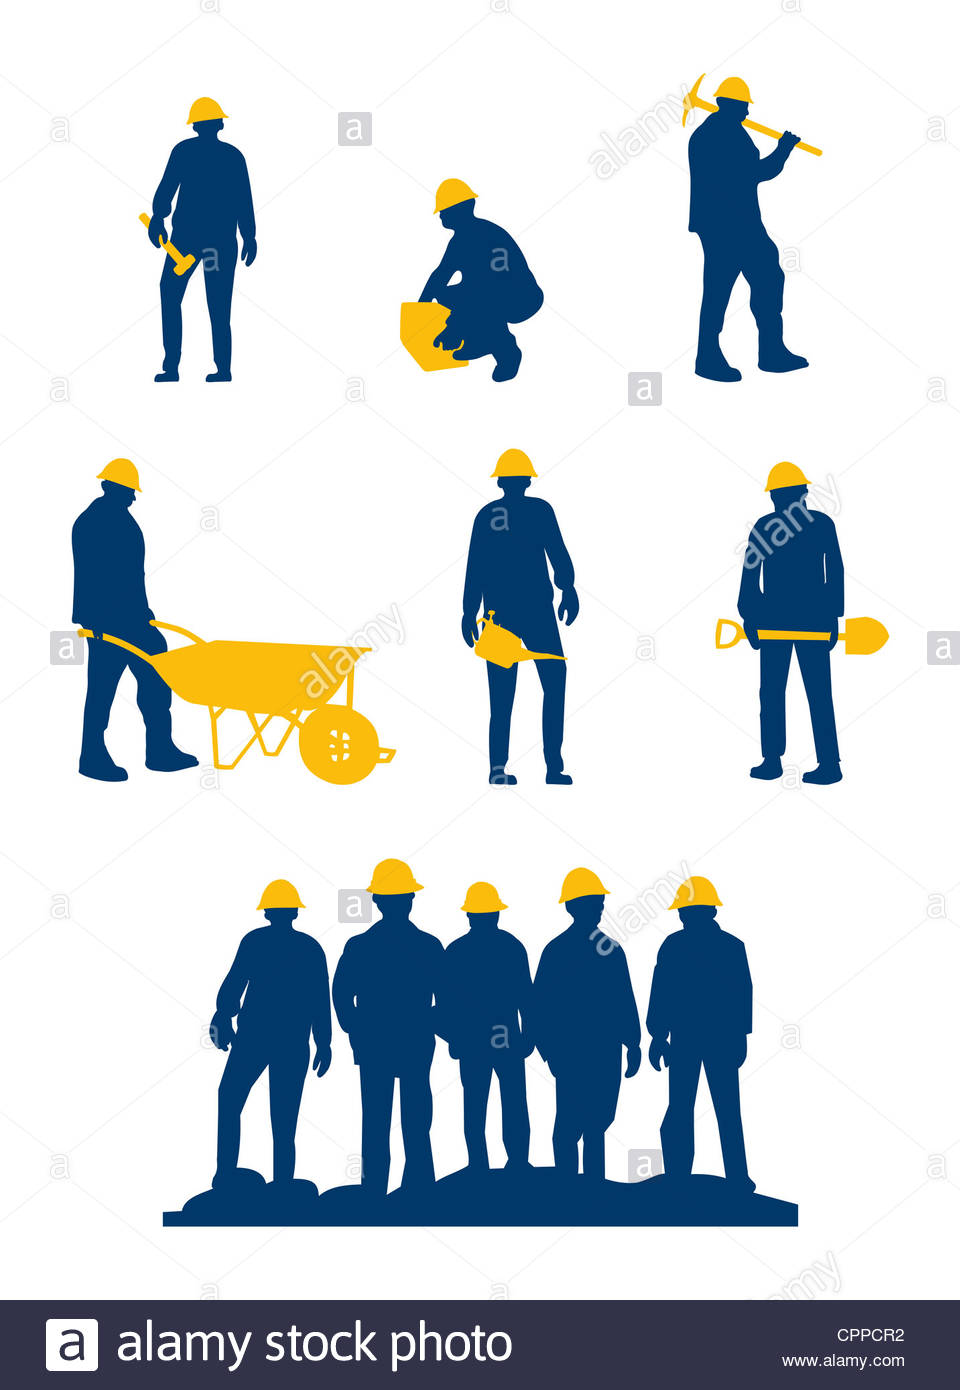 960x1390 Workers Silhouette With Yellow Tools And Helmet Stock Photo